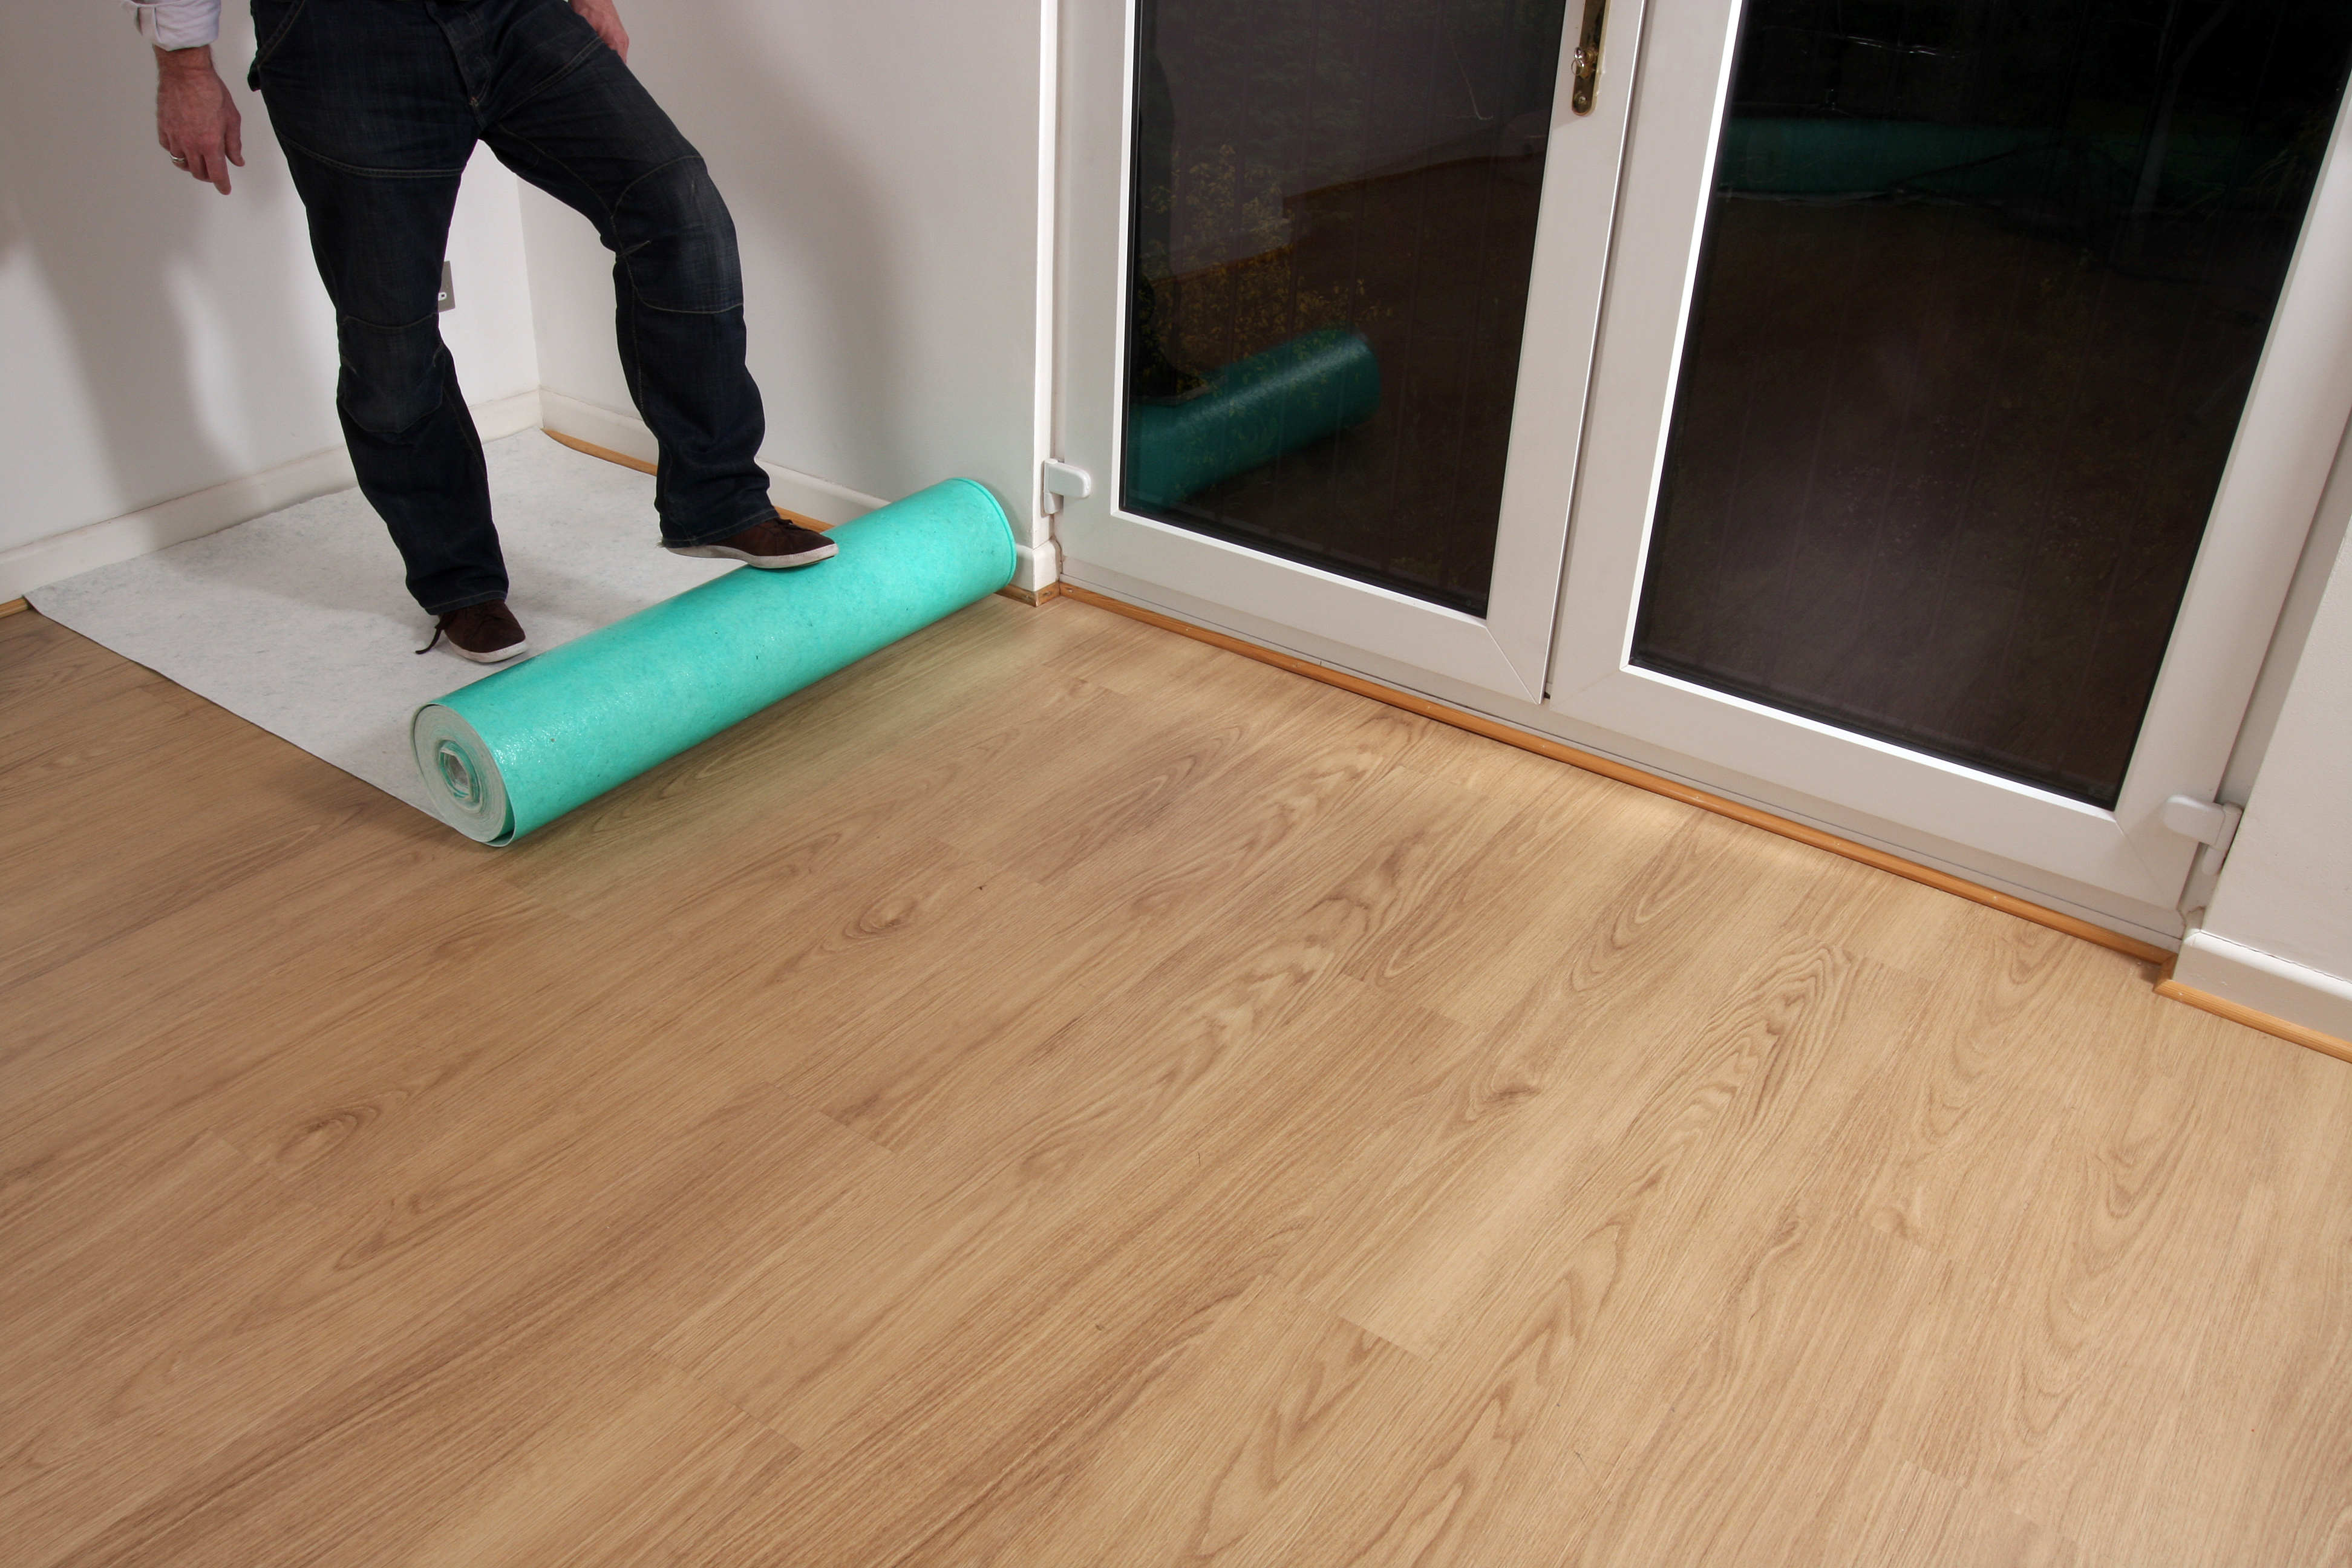 Temporary Hard Floor Protection Premium Self Adhesive